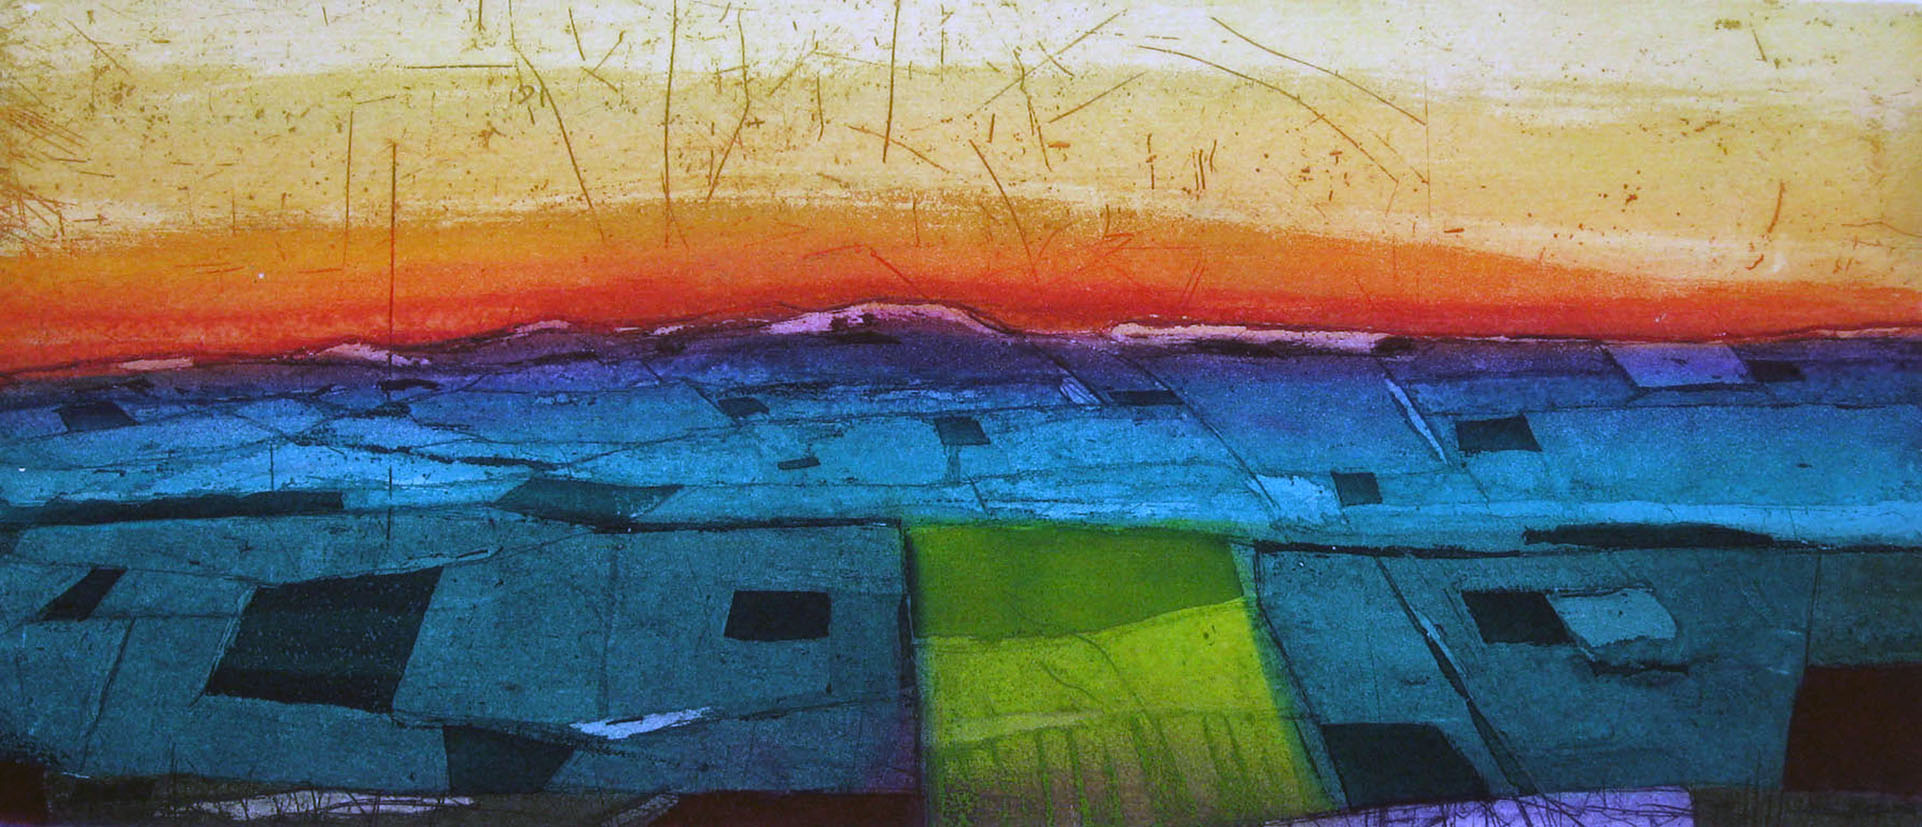 Ian McNicol. New Scottish landscape II